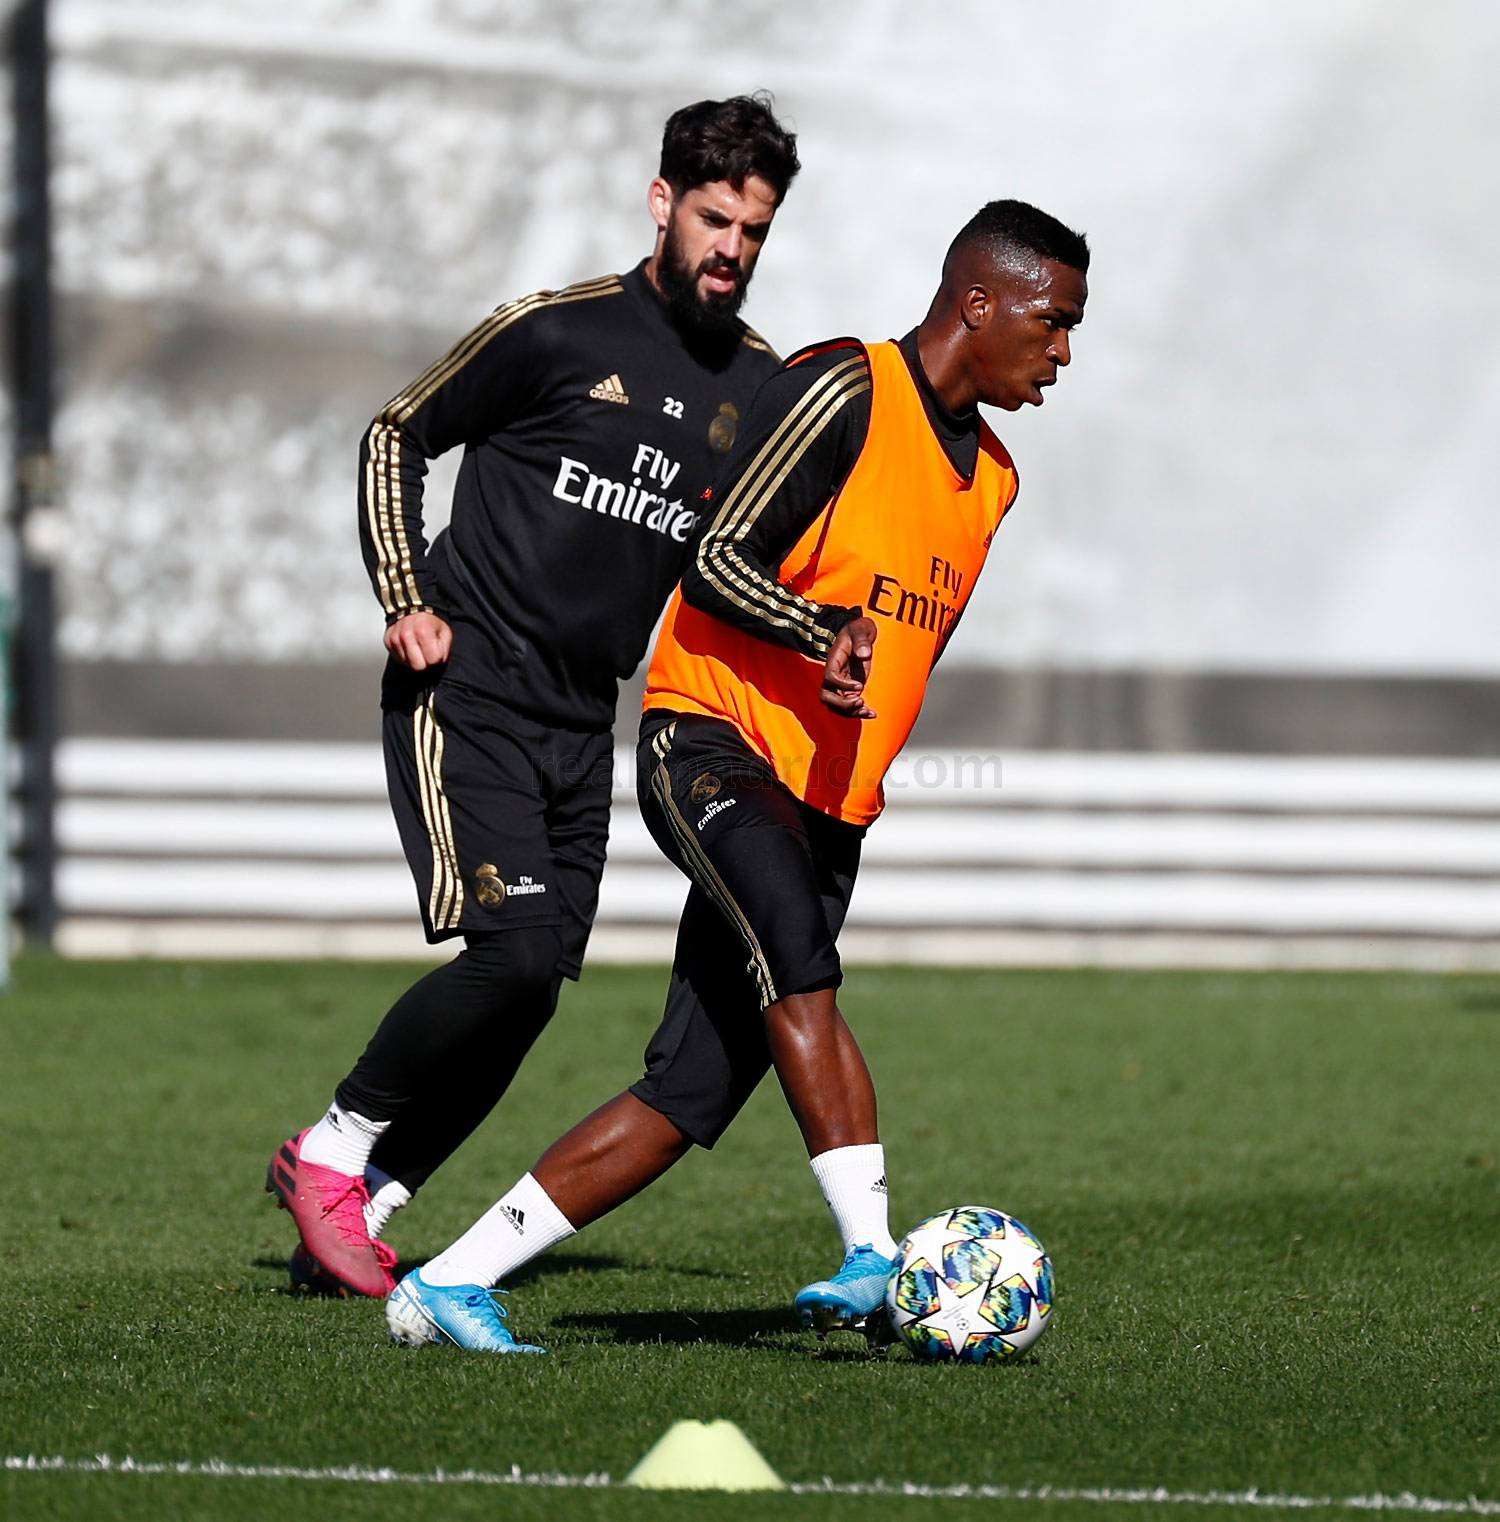 Real Madrid - Entrenamiento del Real Madrid  - 03-11-2019